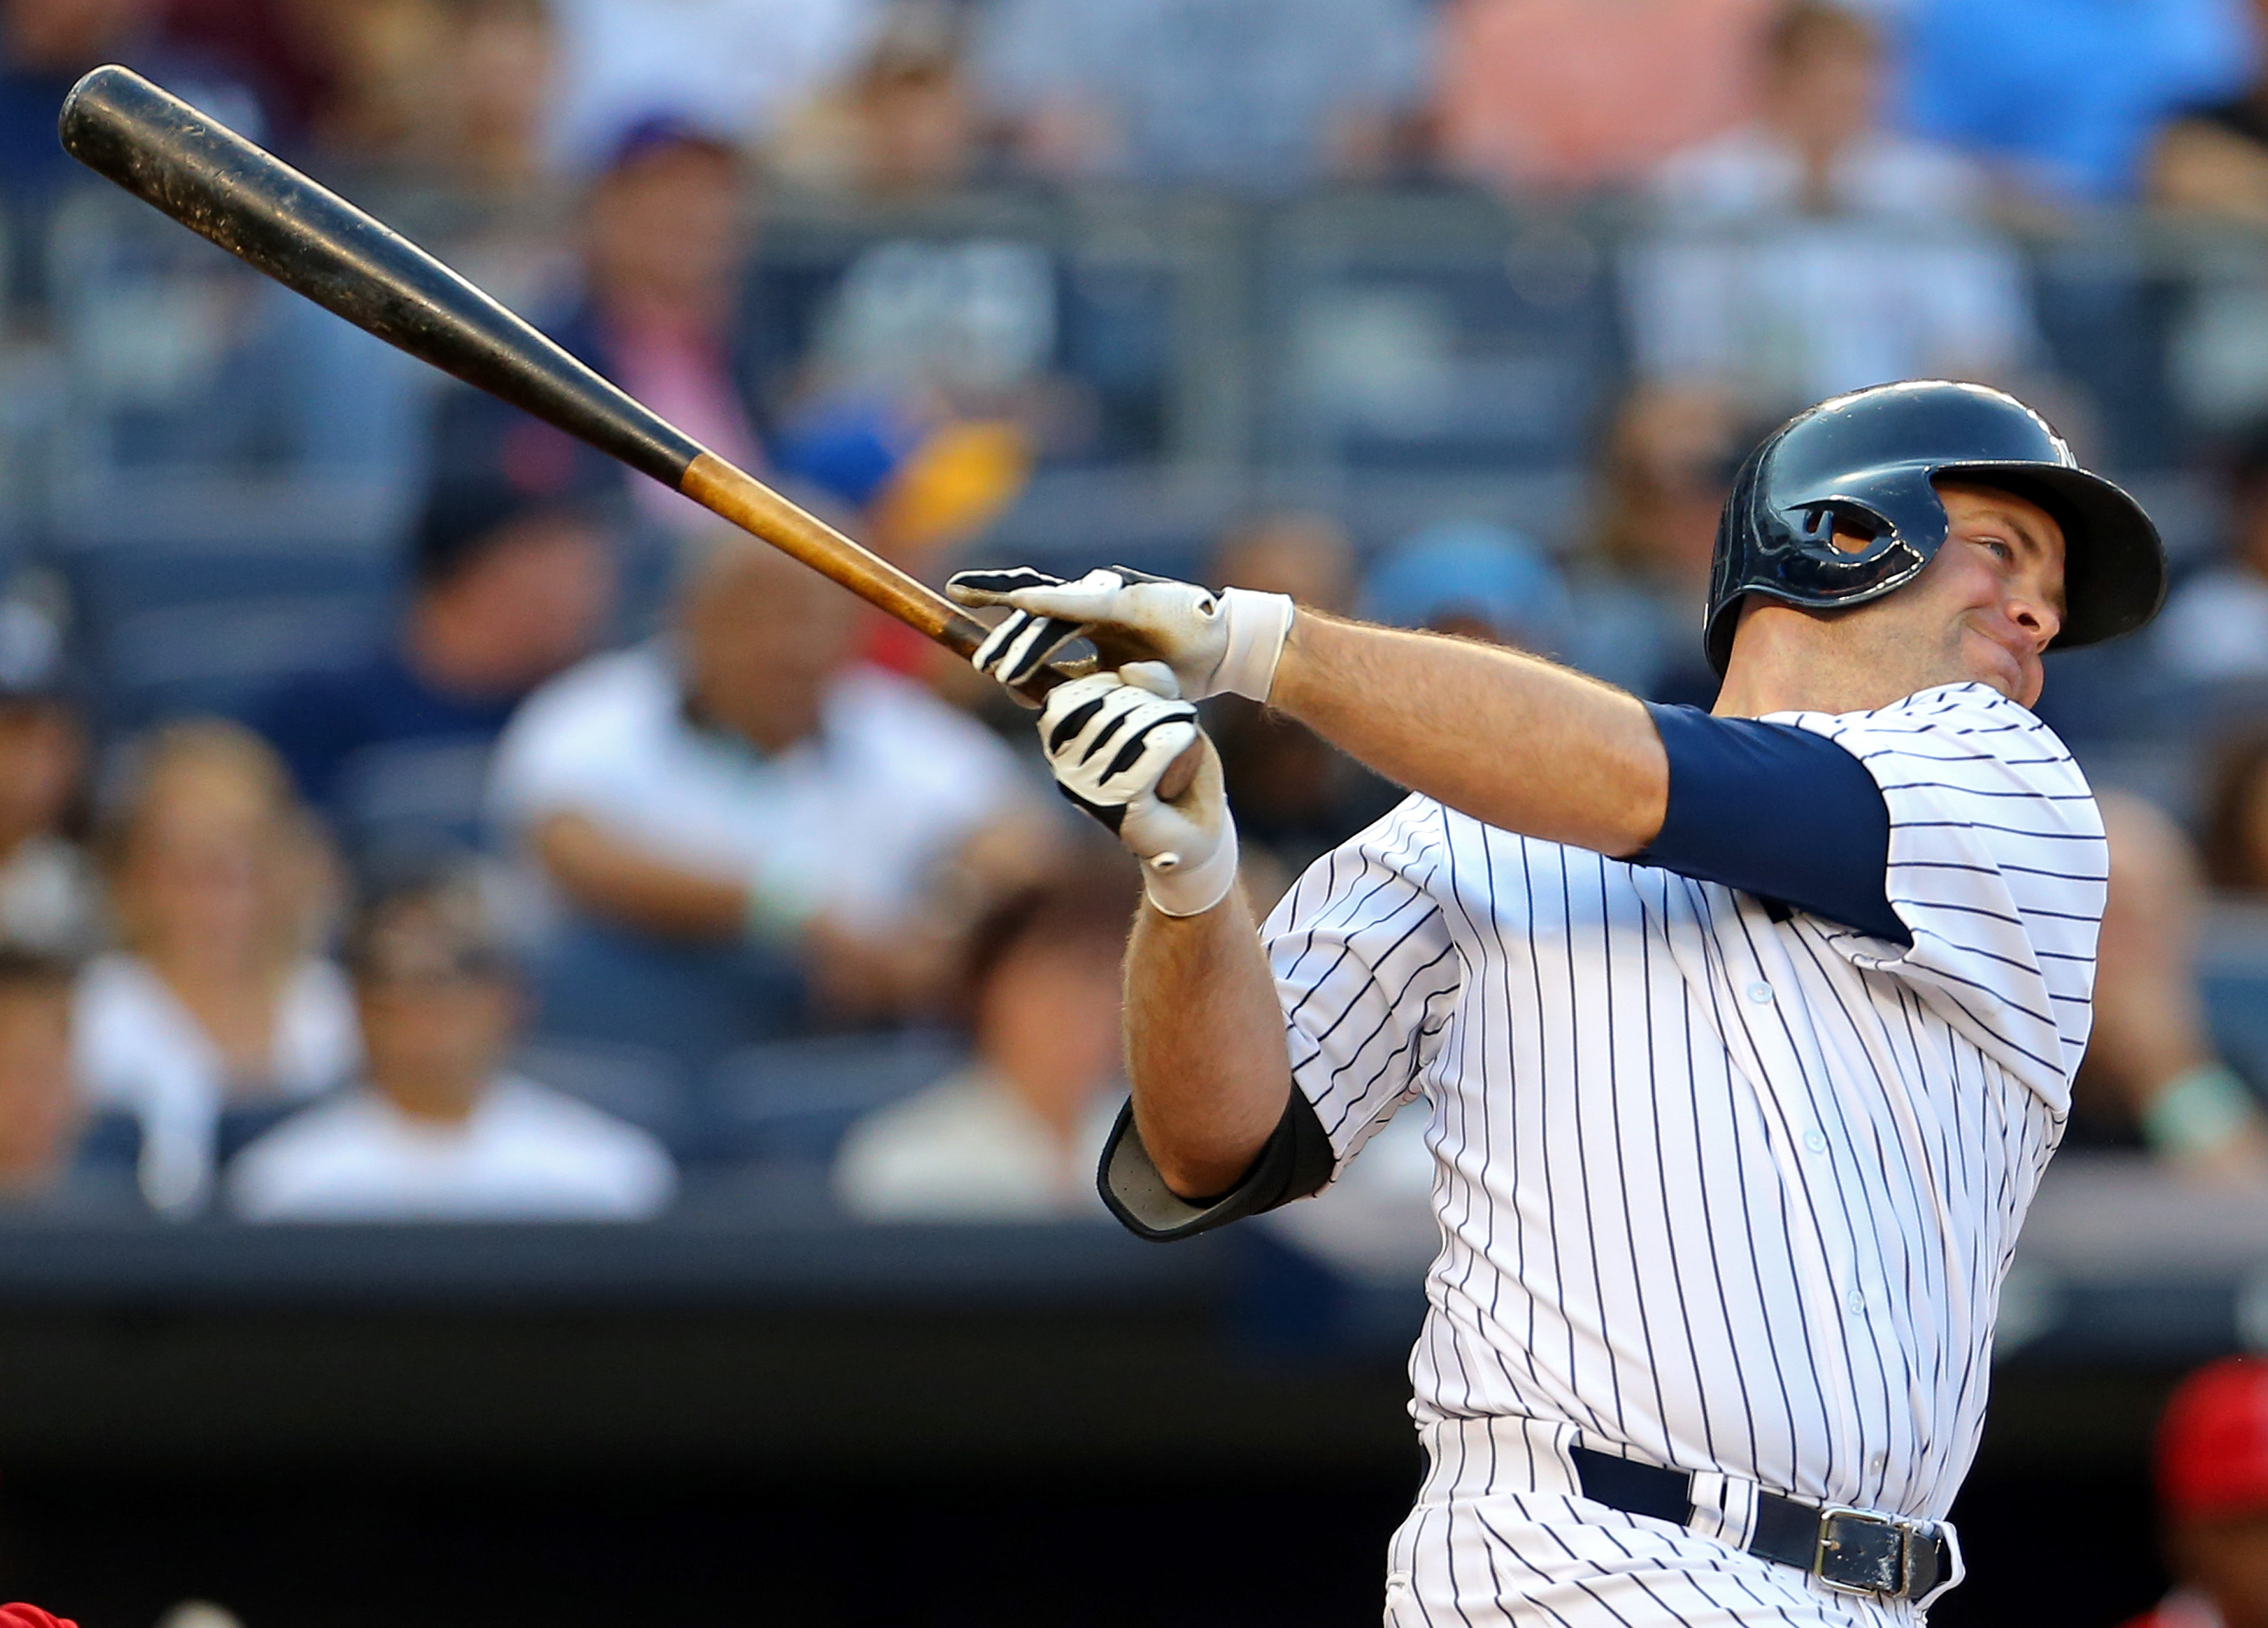 NEW YORK, NY - JUNE 6: Brian McCann #34 of the New York Yankees hits a 2-run home run against the Los Angeles Angels of Anaheim during the first inning at Yankee Stadium on June 6, 2015 in the Bronx borough of New York City. (Photo by Adam Hunger/Getty Images)